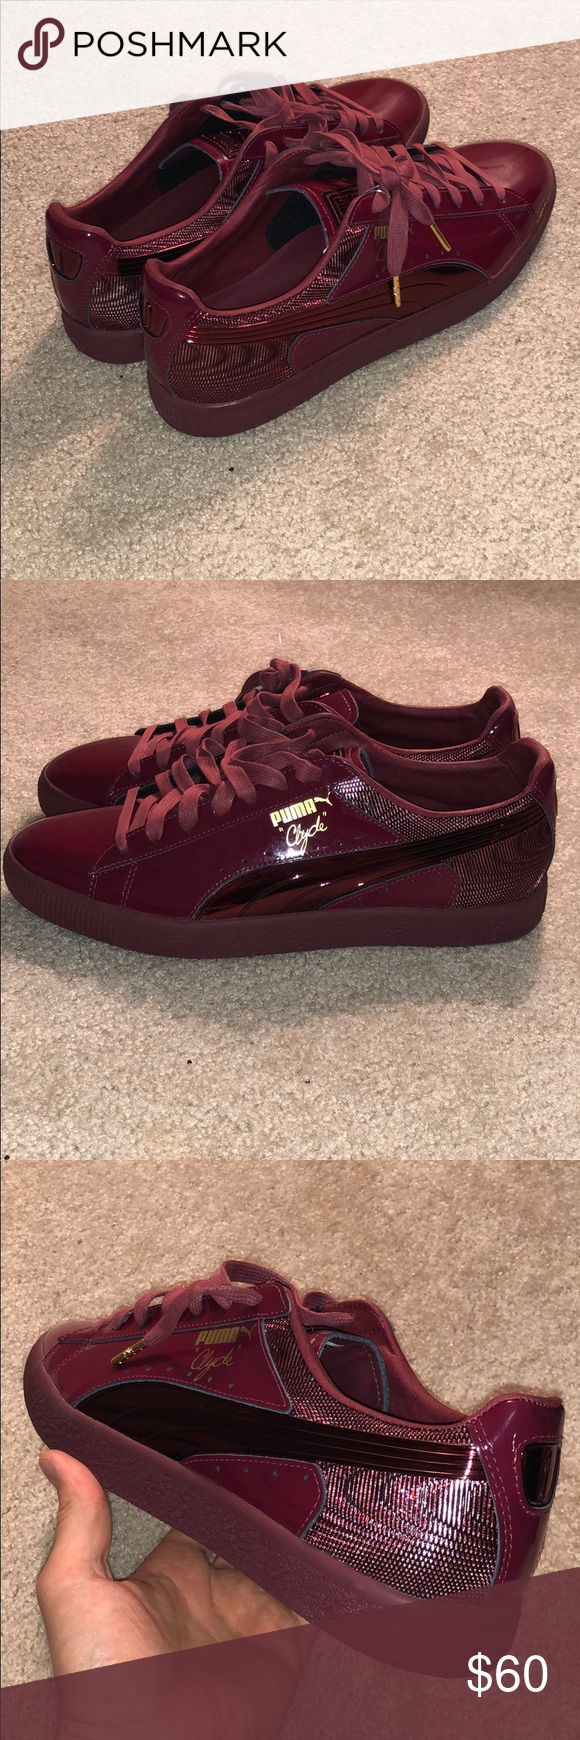 reputable site 83905 ba755 BRAND NEW Puma Clyde Wraith size 12 Up for sale is a brand ...